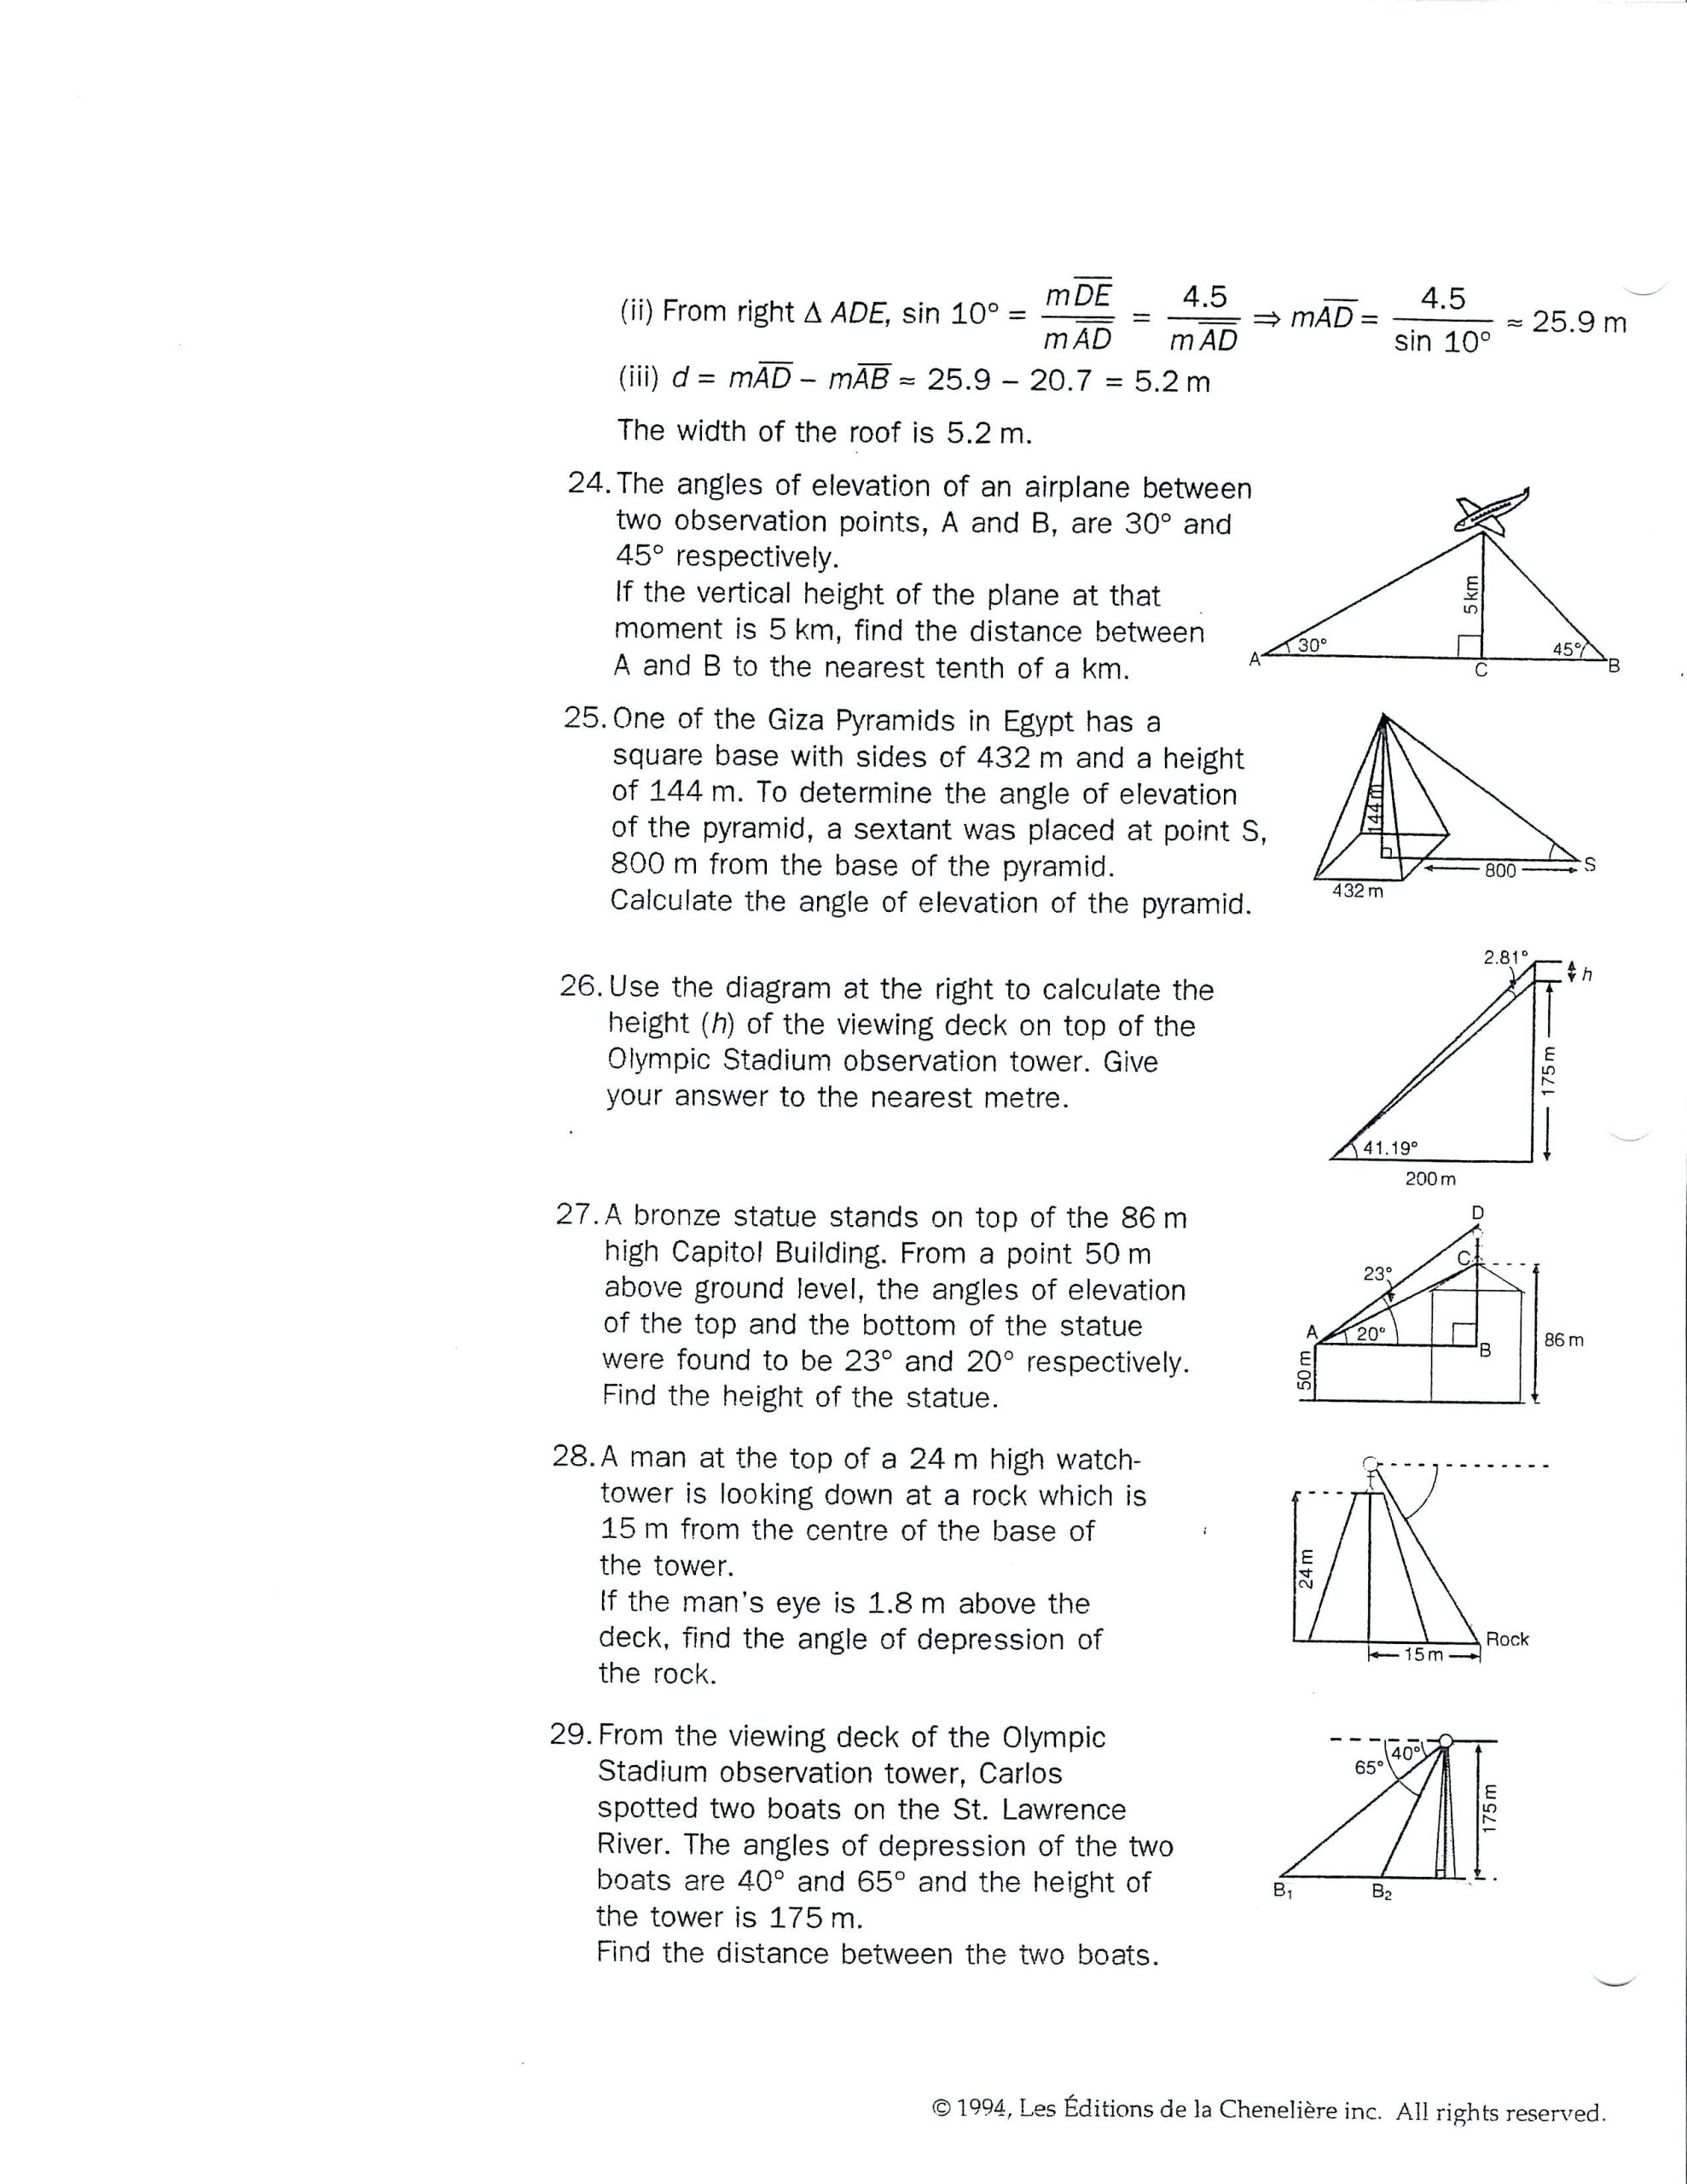 college math problems with answers lovely trigonometry problems worksheet trigonometry problems worksheet unique college math worksheets with answers hard college math problems with answers